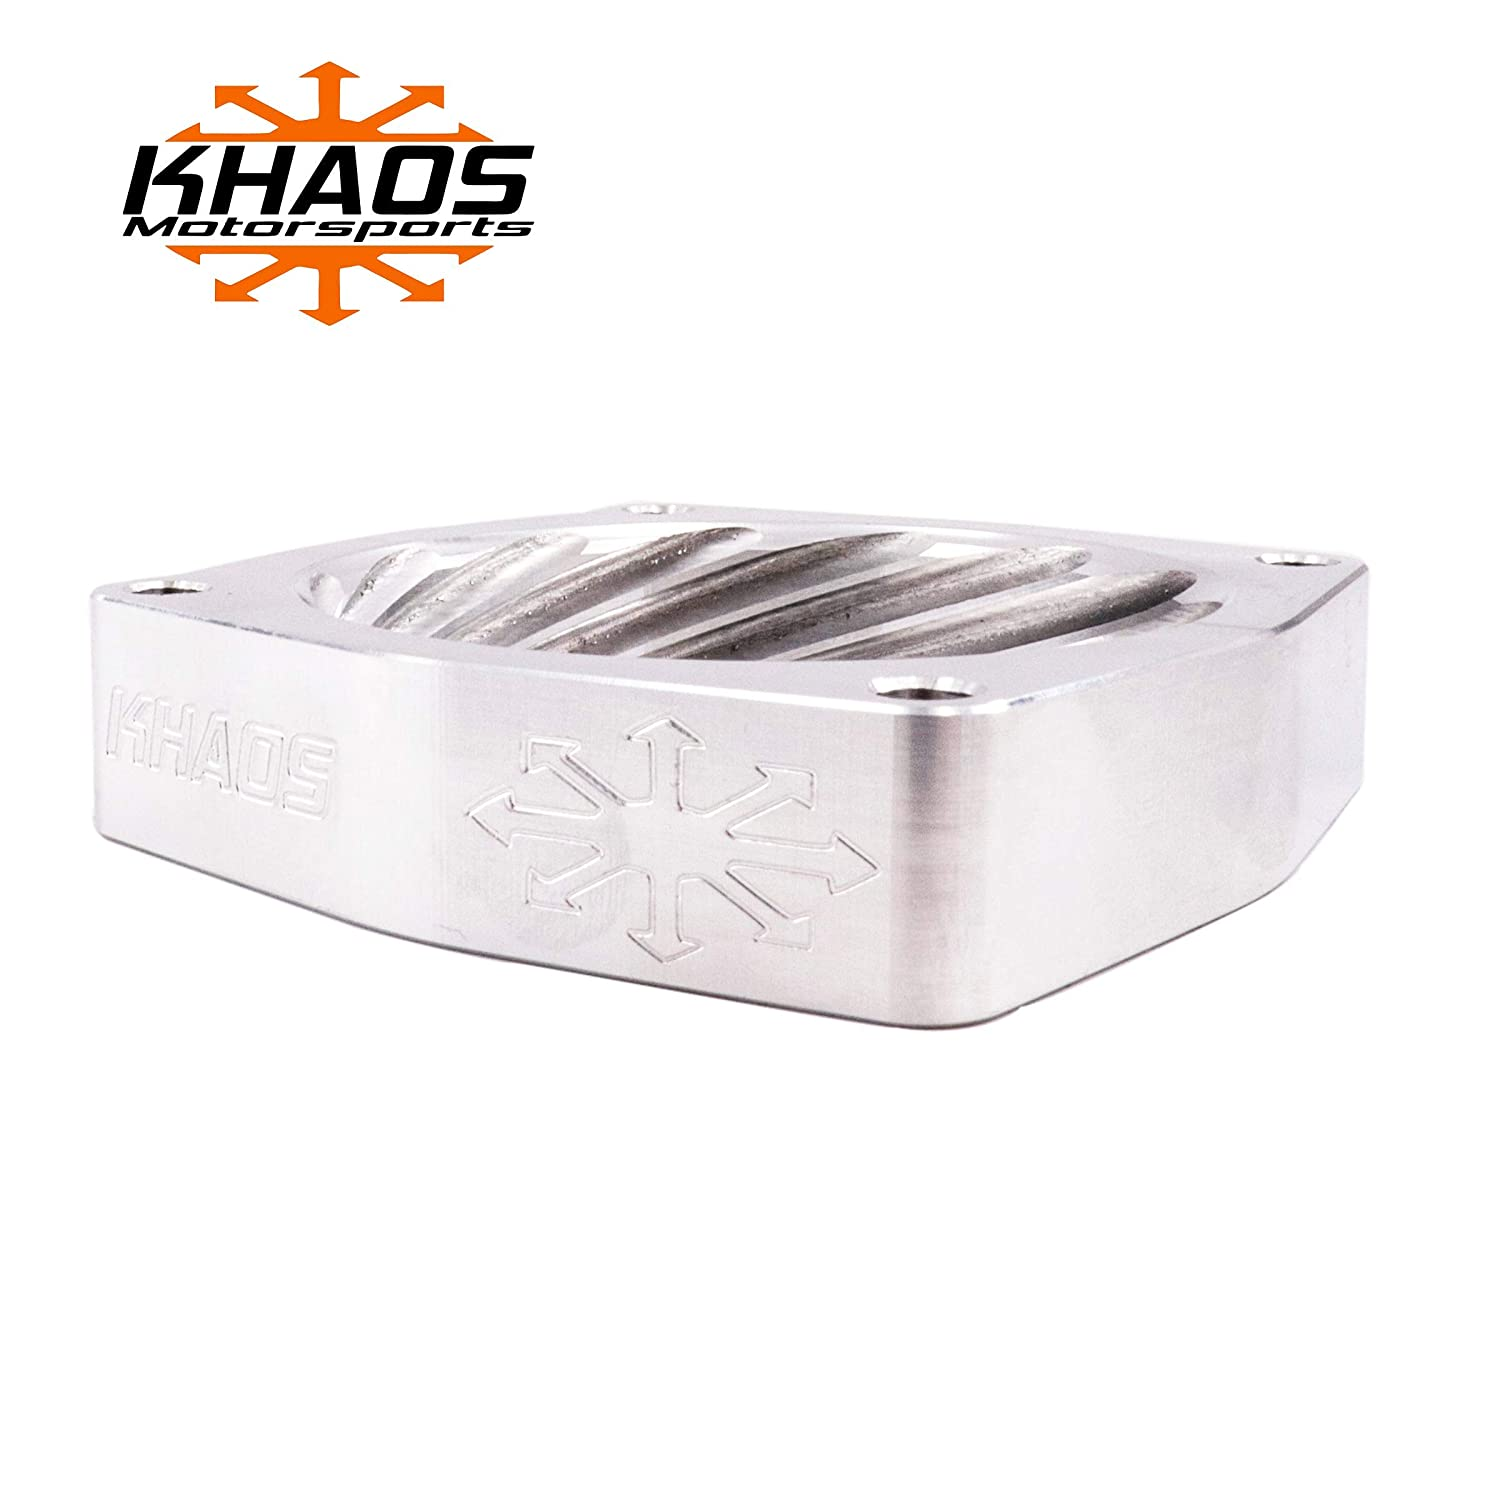 Khaos Motorsports Helix Bore Throttle Body Spacer for Jeep Wrangler 2012-2019 3.6L